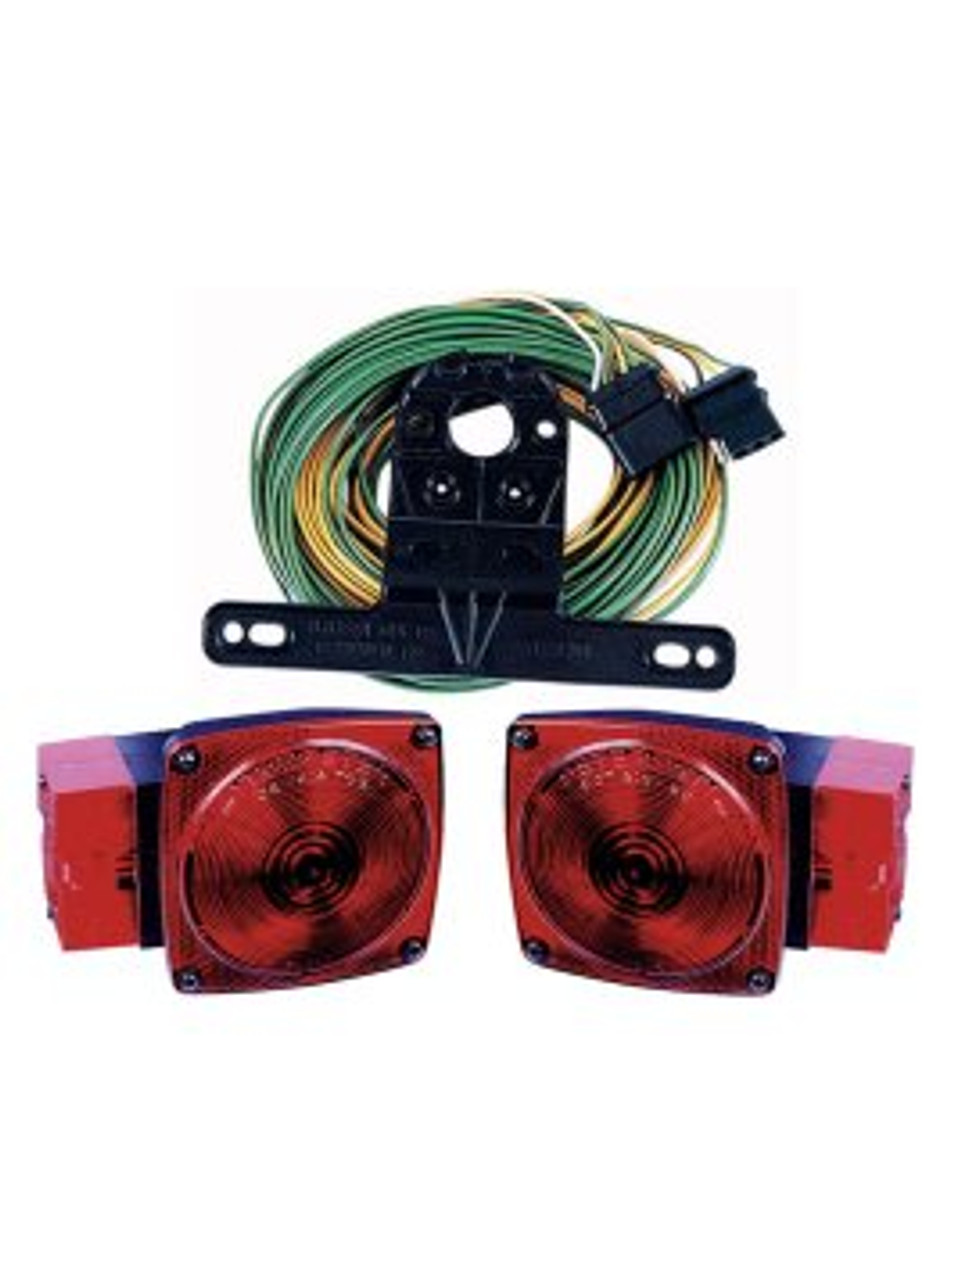 "544 --- Submersible Rear Trailer Light Kit - For Over 80"" Wide Trailers"